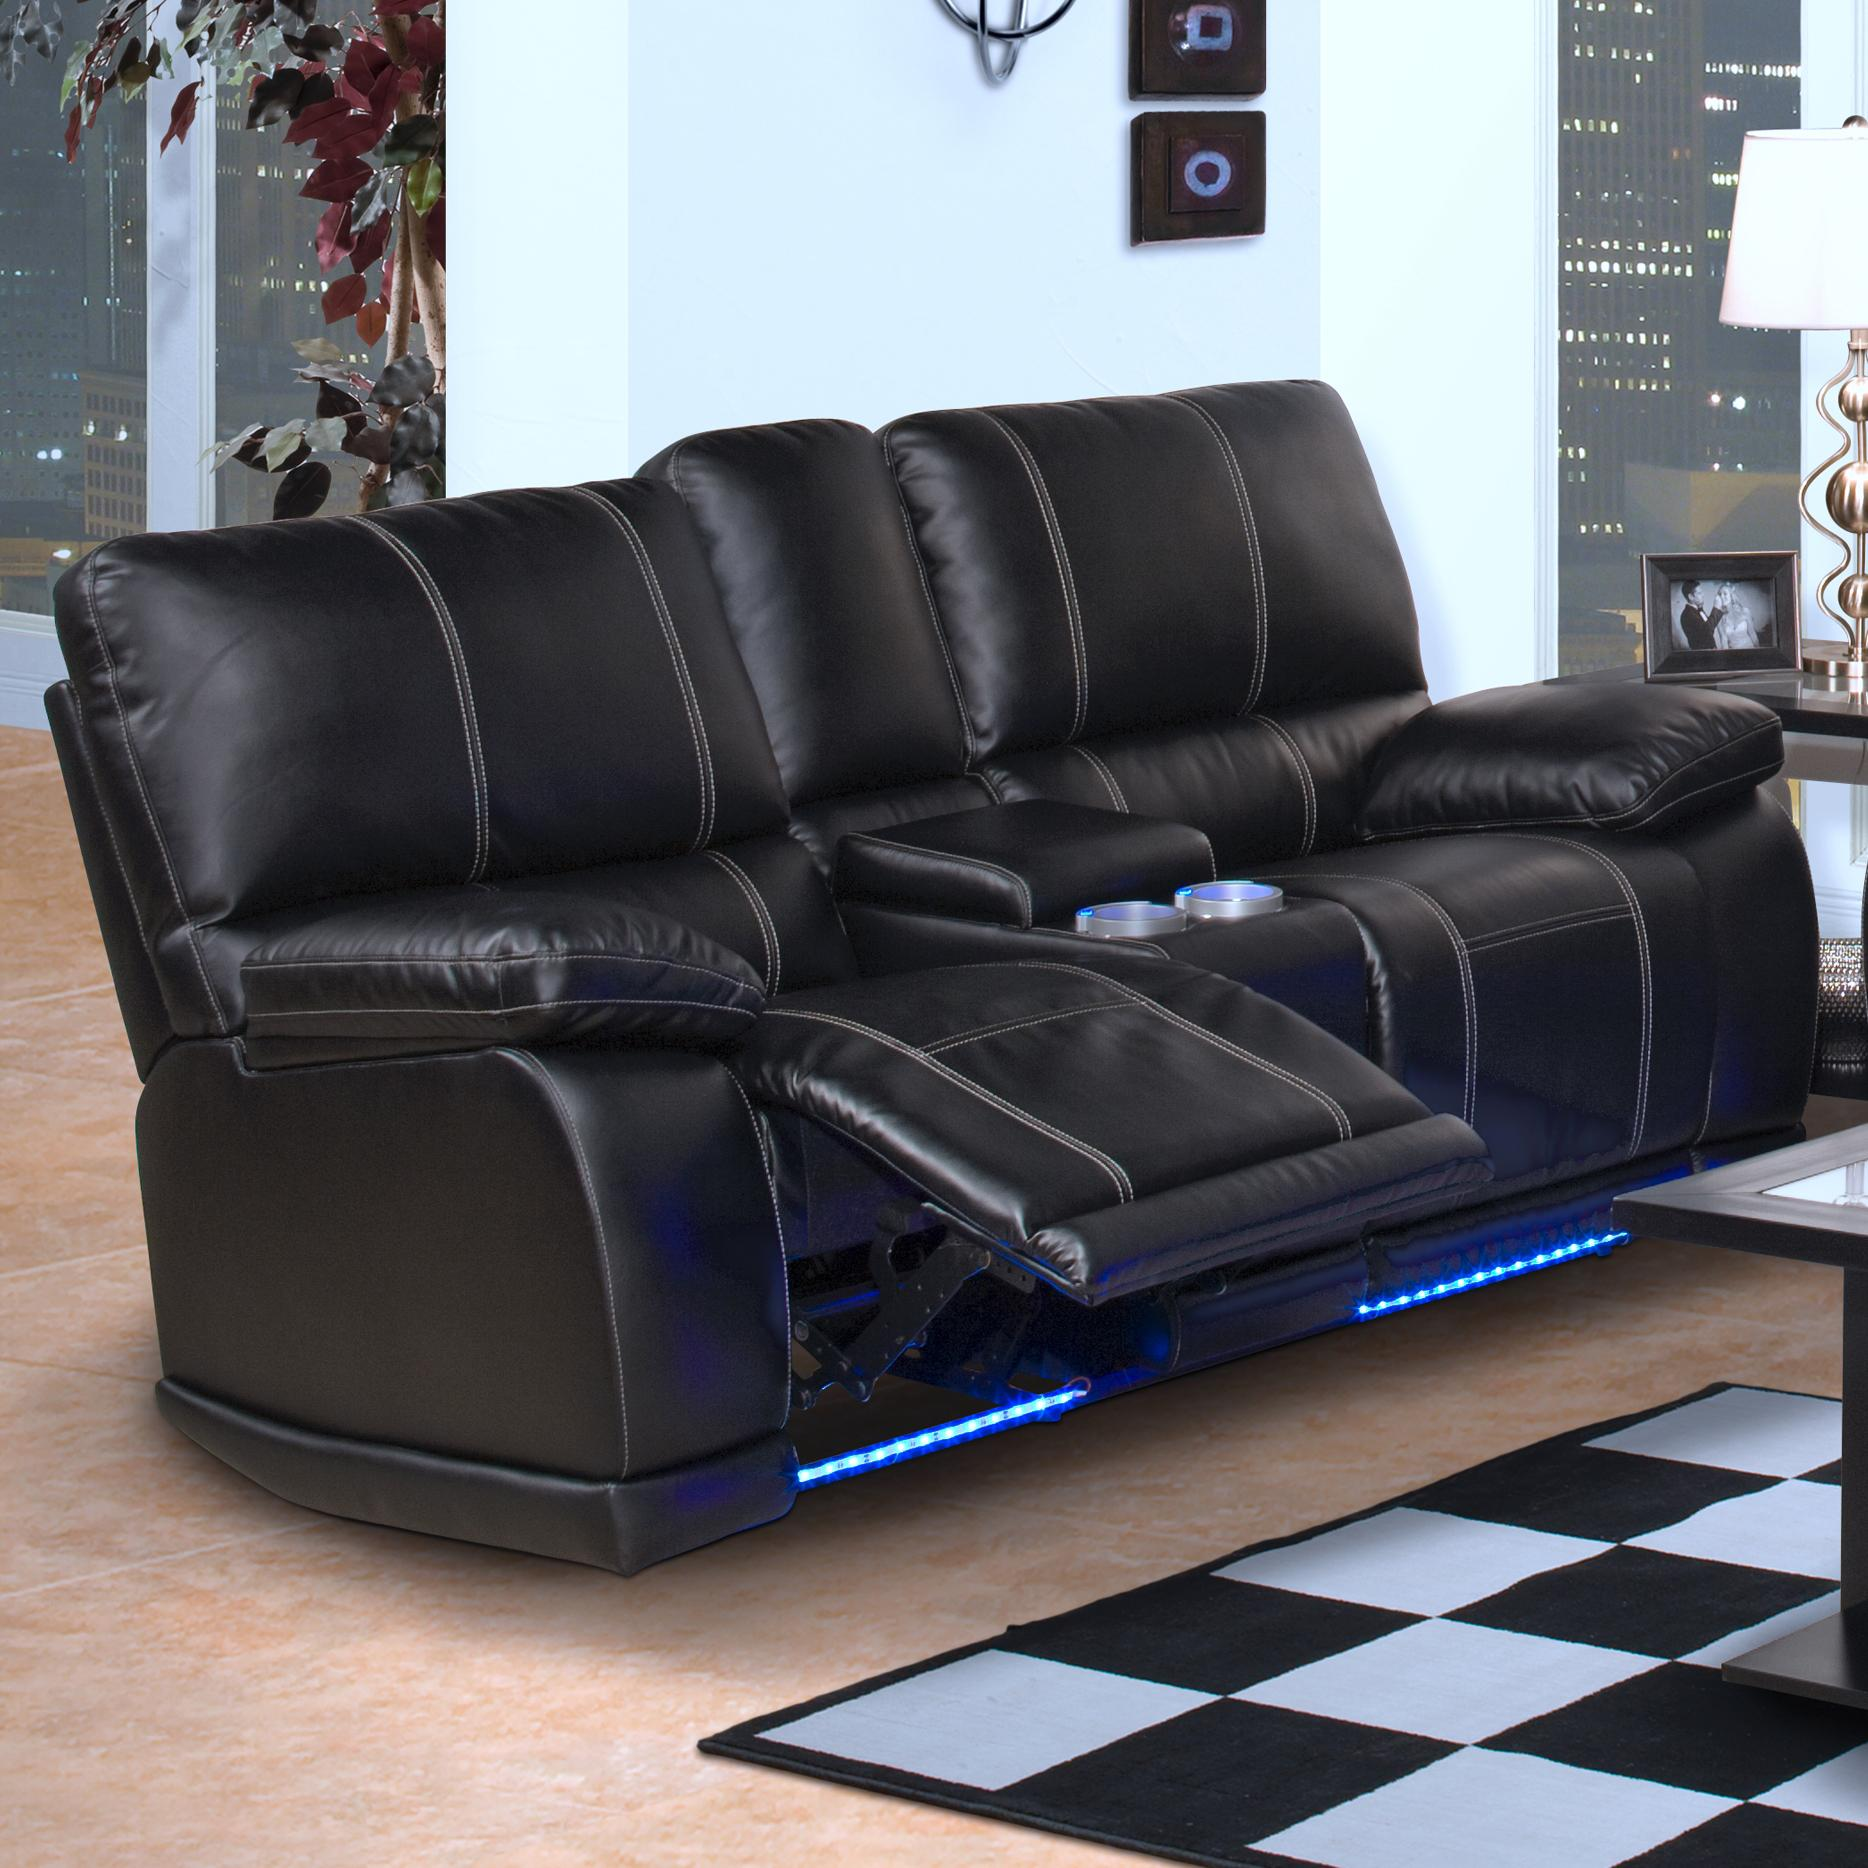 power reclining sofa with cup holders 60 inch long sleeper new classic electra 22 382 25 mbk contemporary